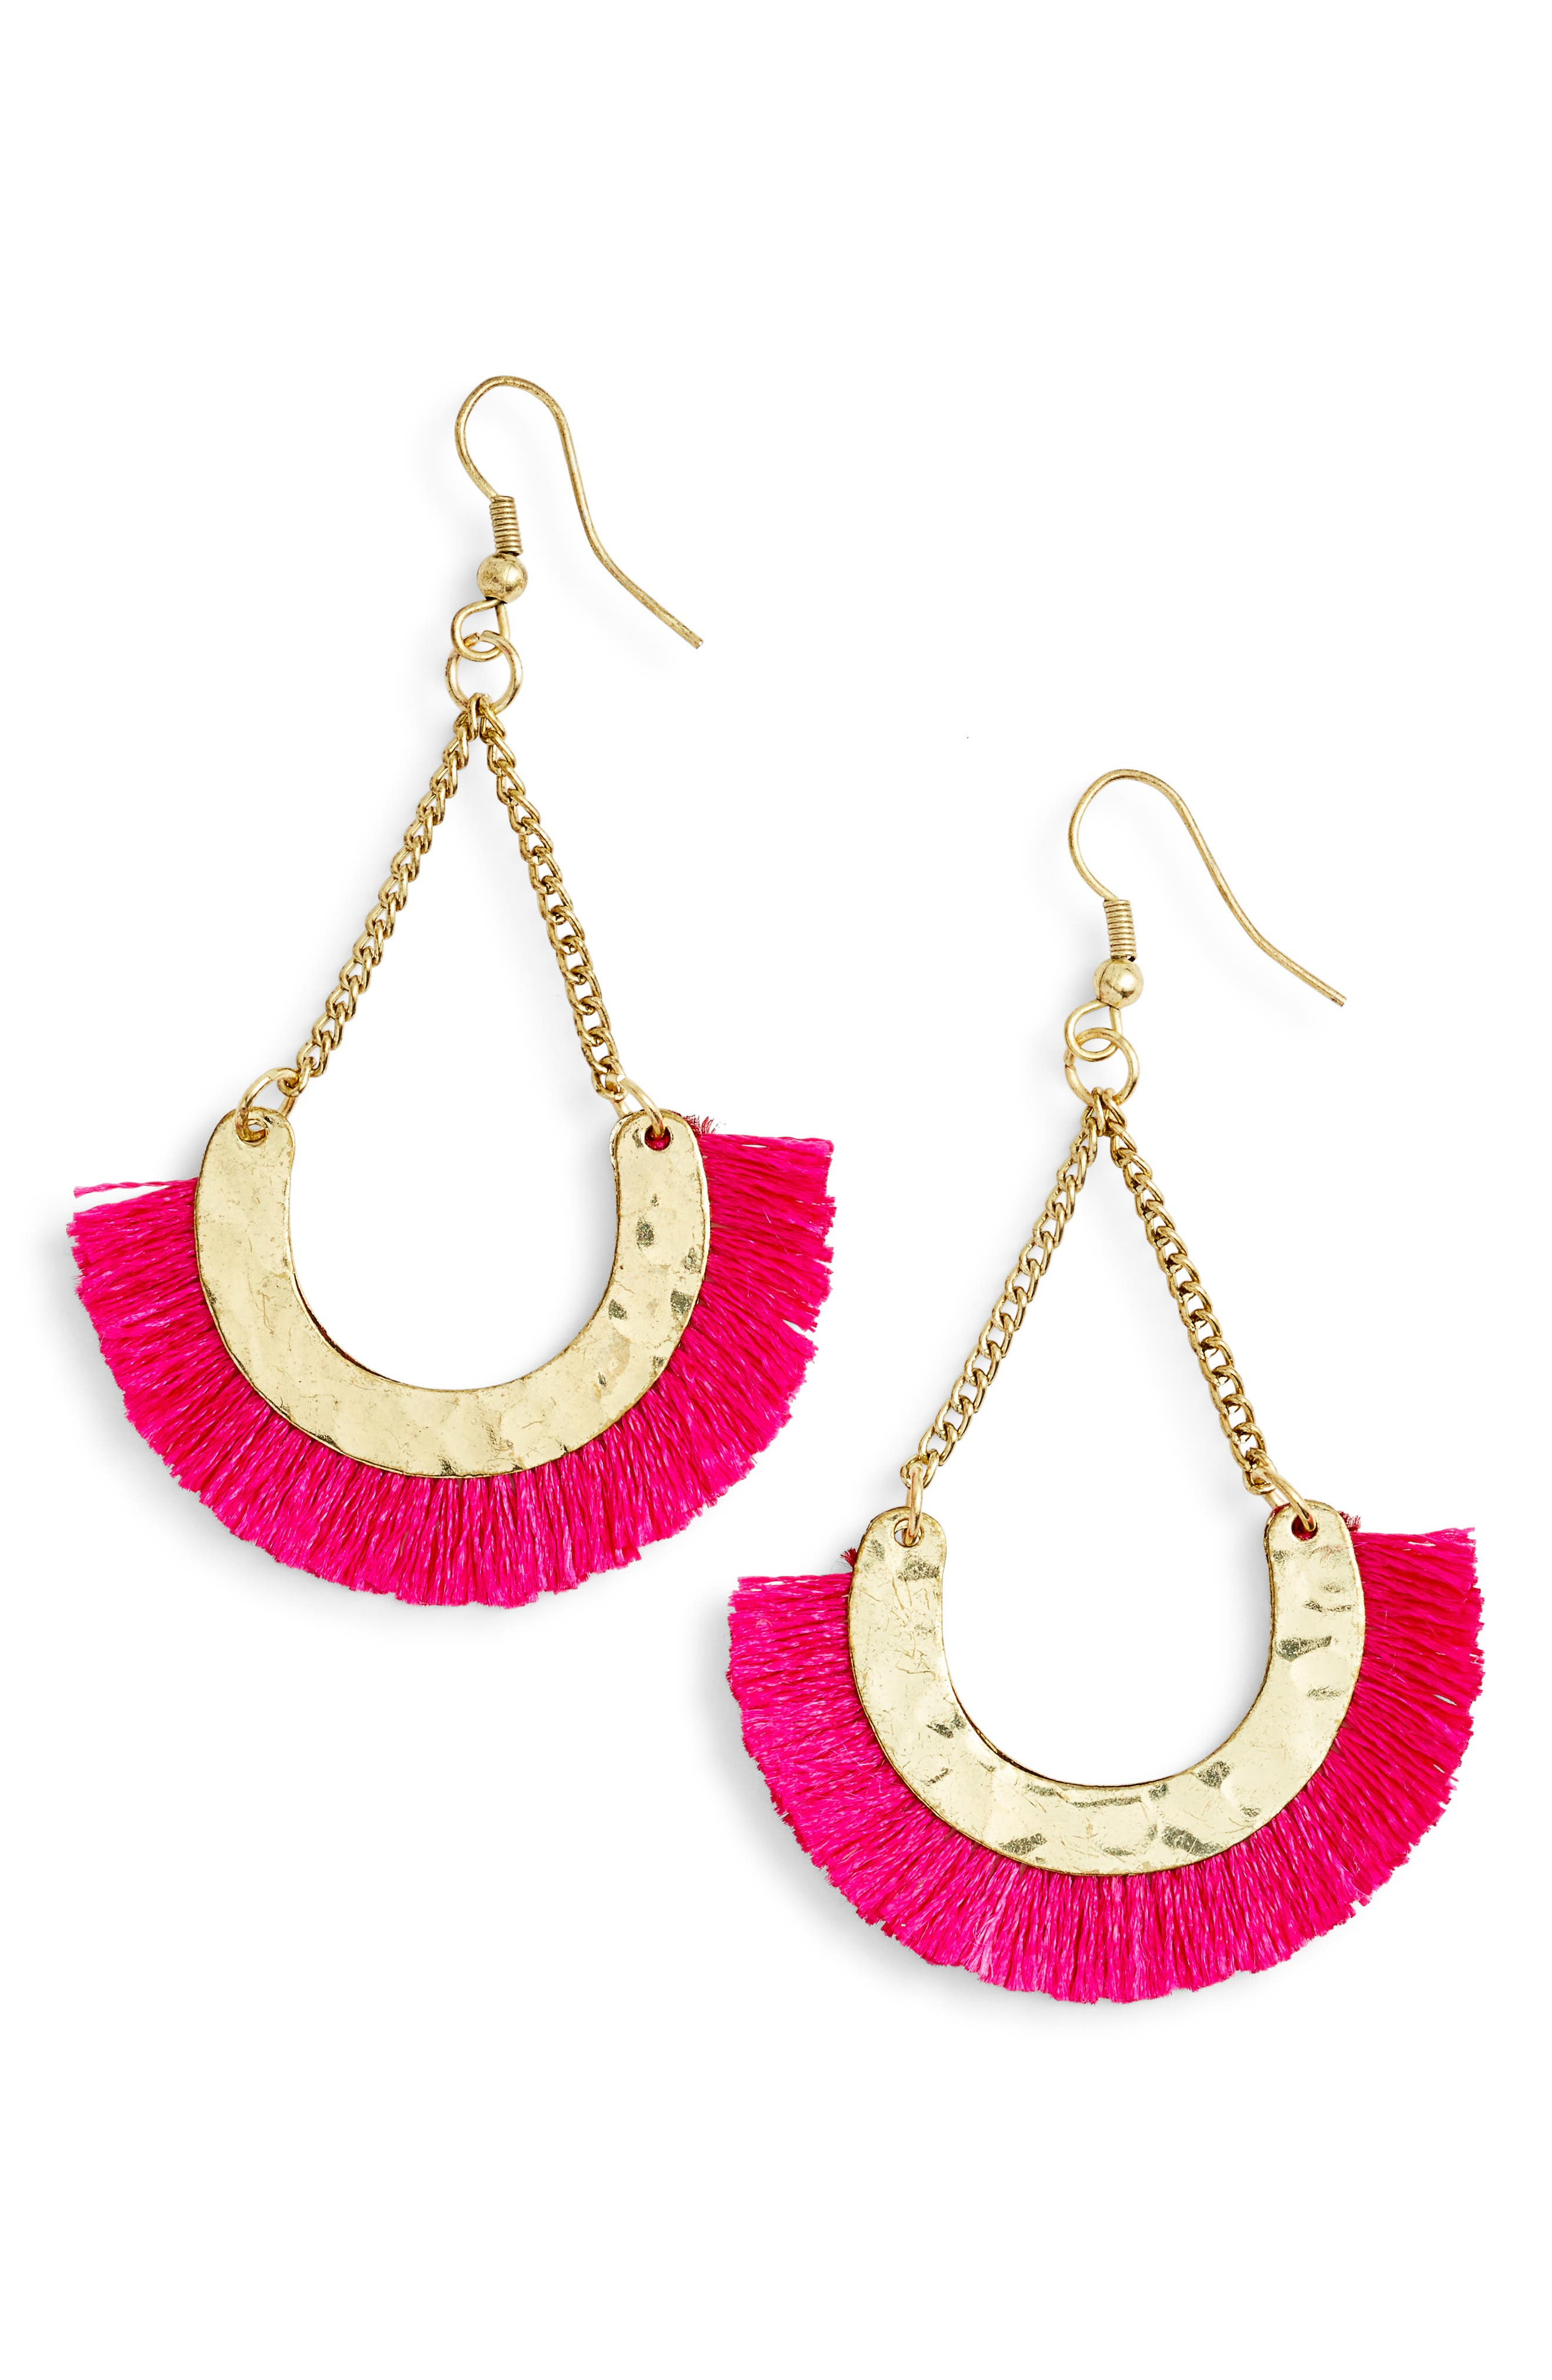 Maldives Fringed Fan Earrings,                             Main thumbnail 1, color,